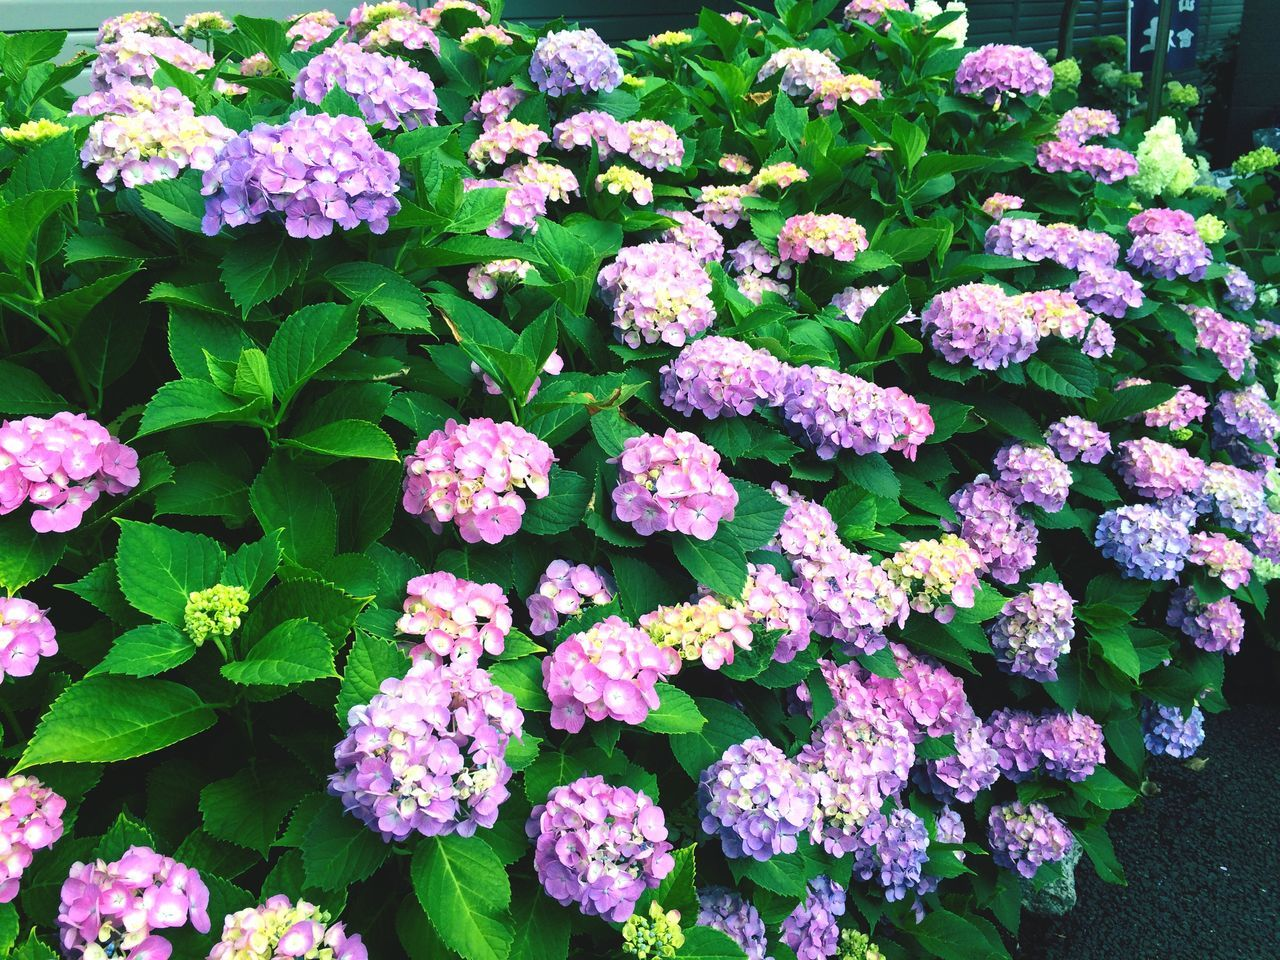 Hydrangea Japan EyeEm Best Shots Flower